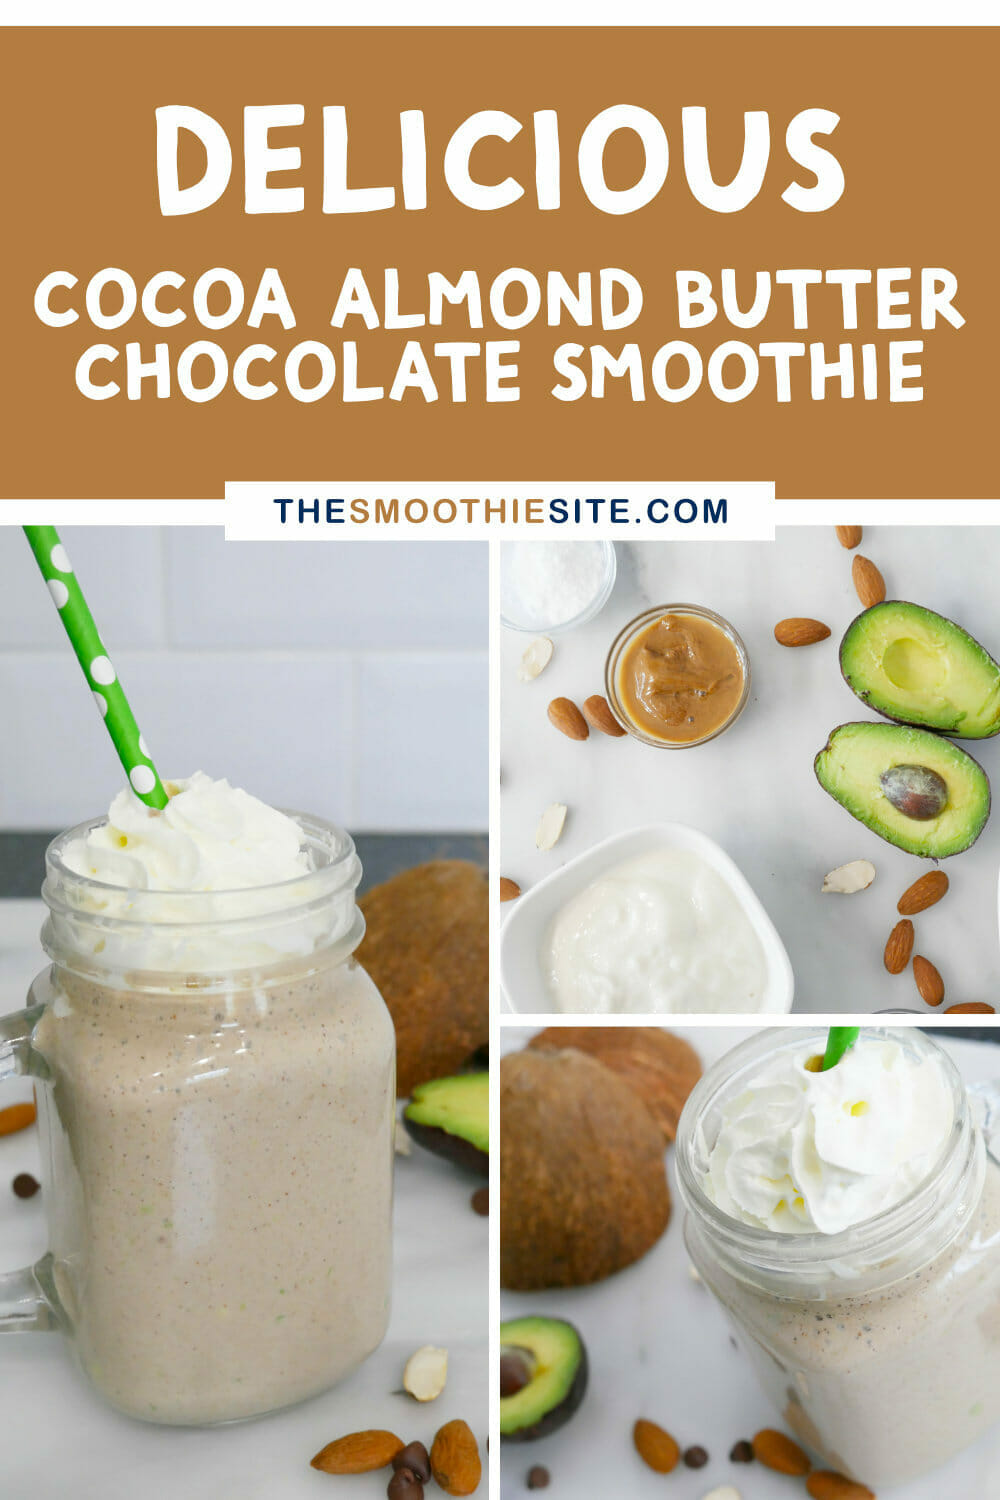 Cocoa almond butter chocolate smoothie (+ Fat Bomb Secret Ingredients!) via @thesmoothiesite